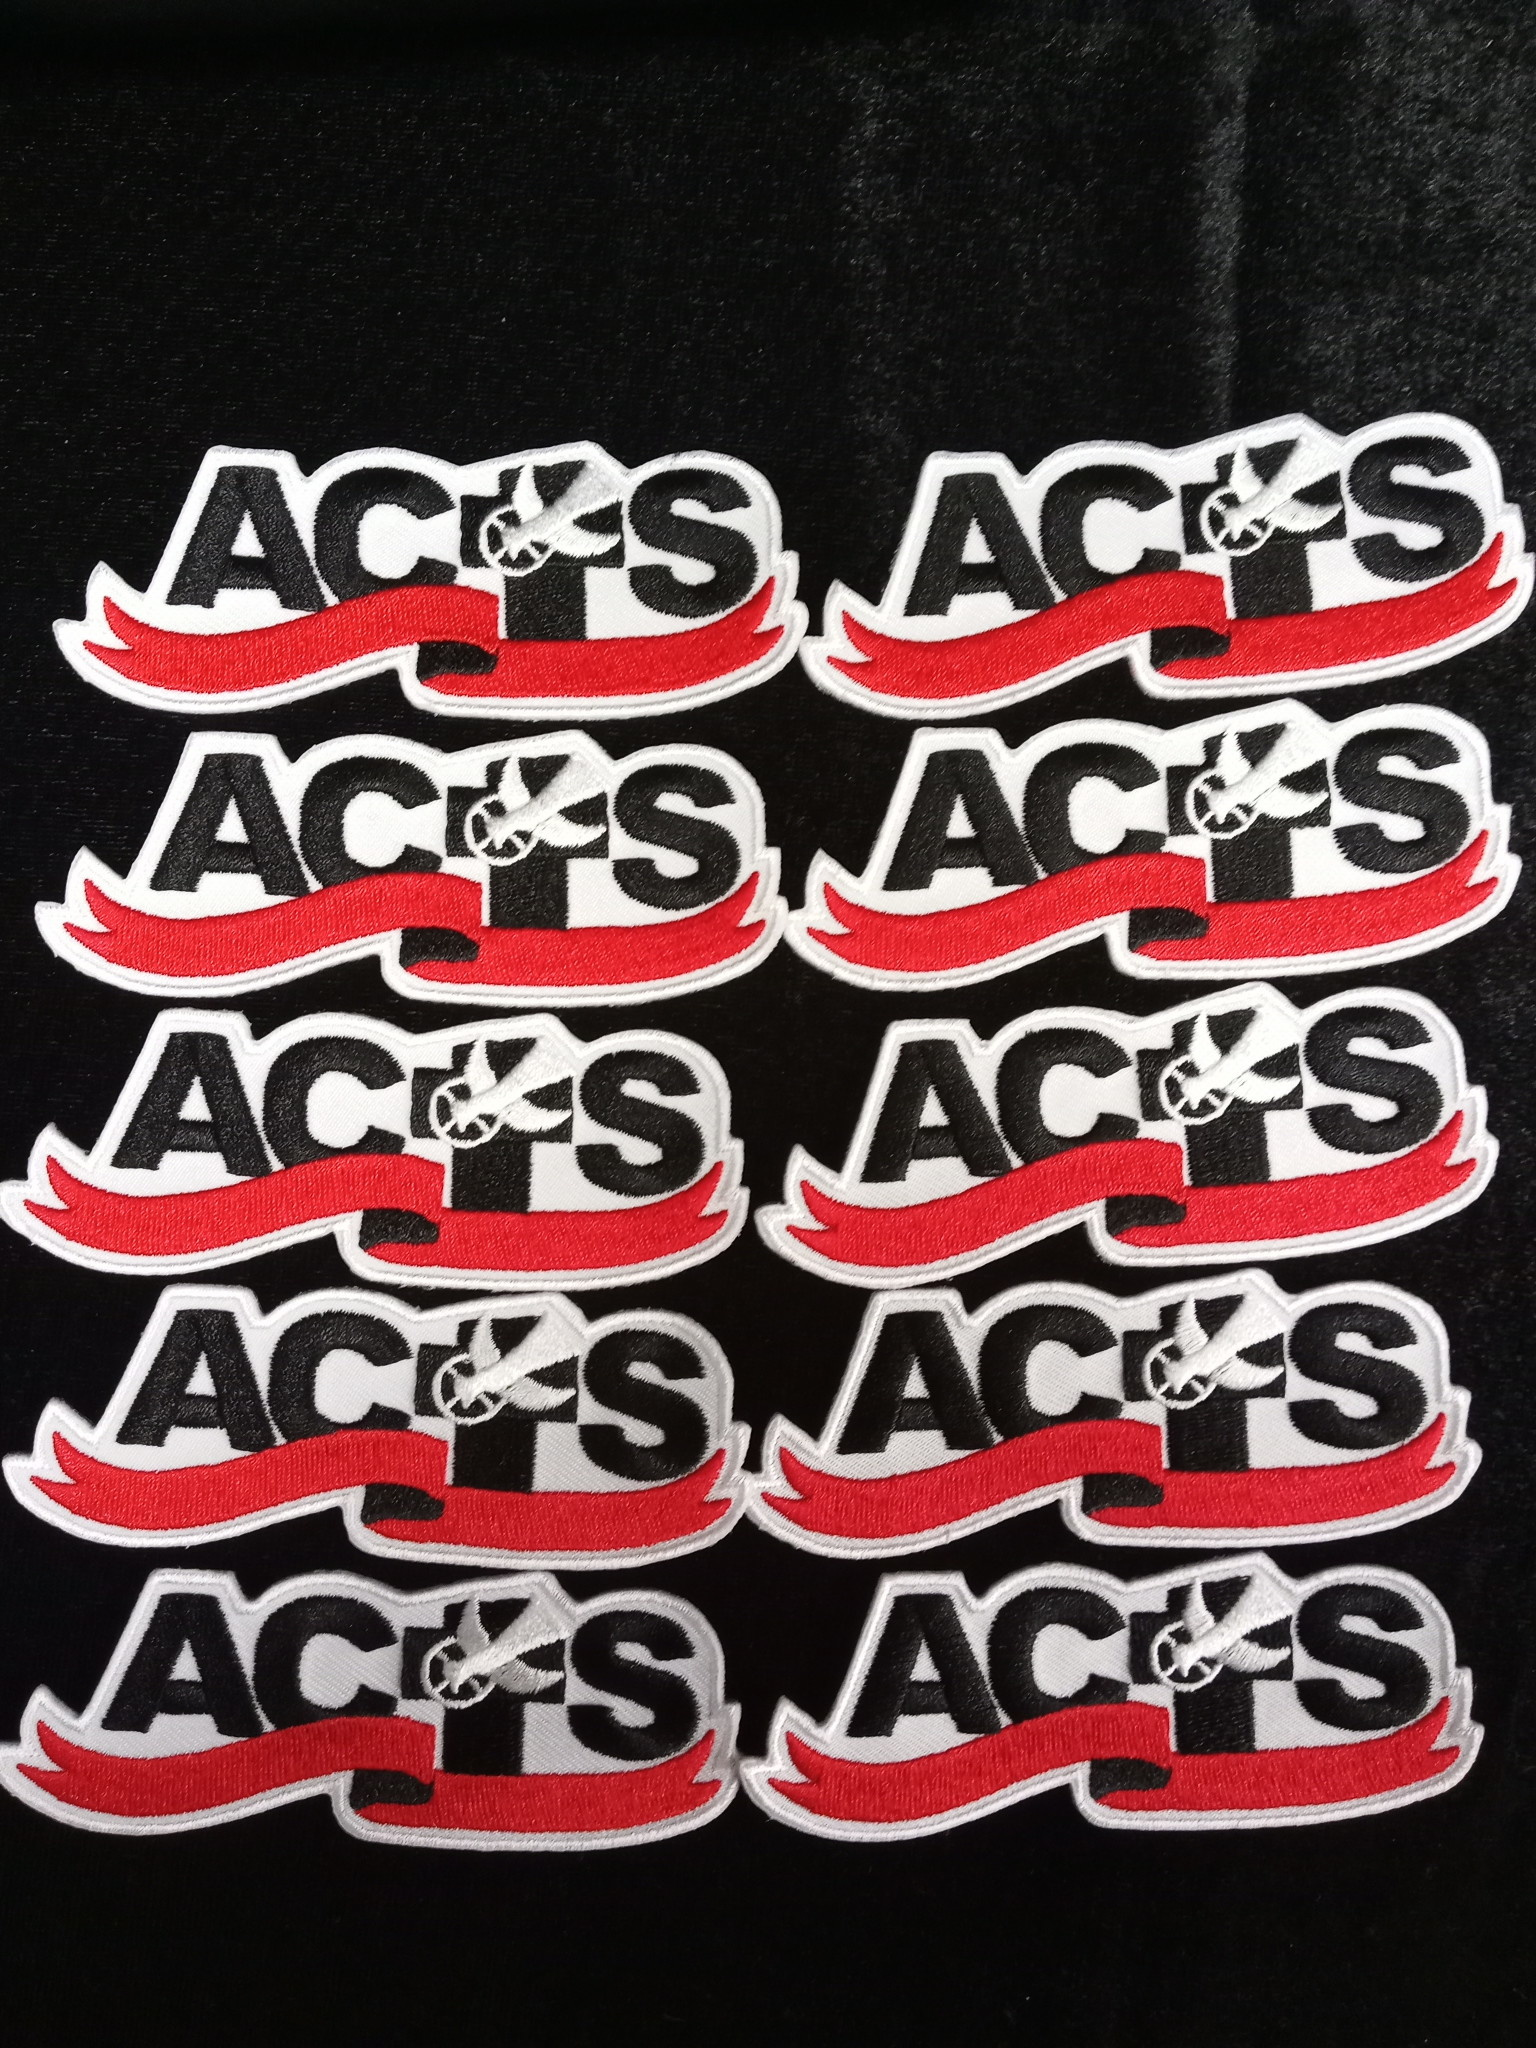 ACTS Ribbon Logo Patch 10 Pack Fall Special